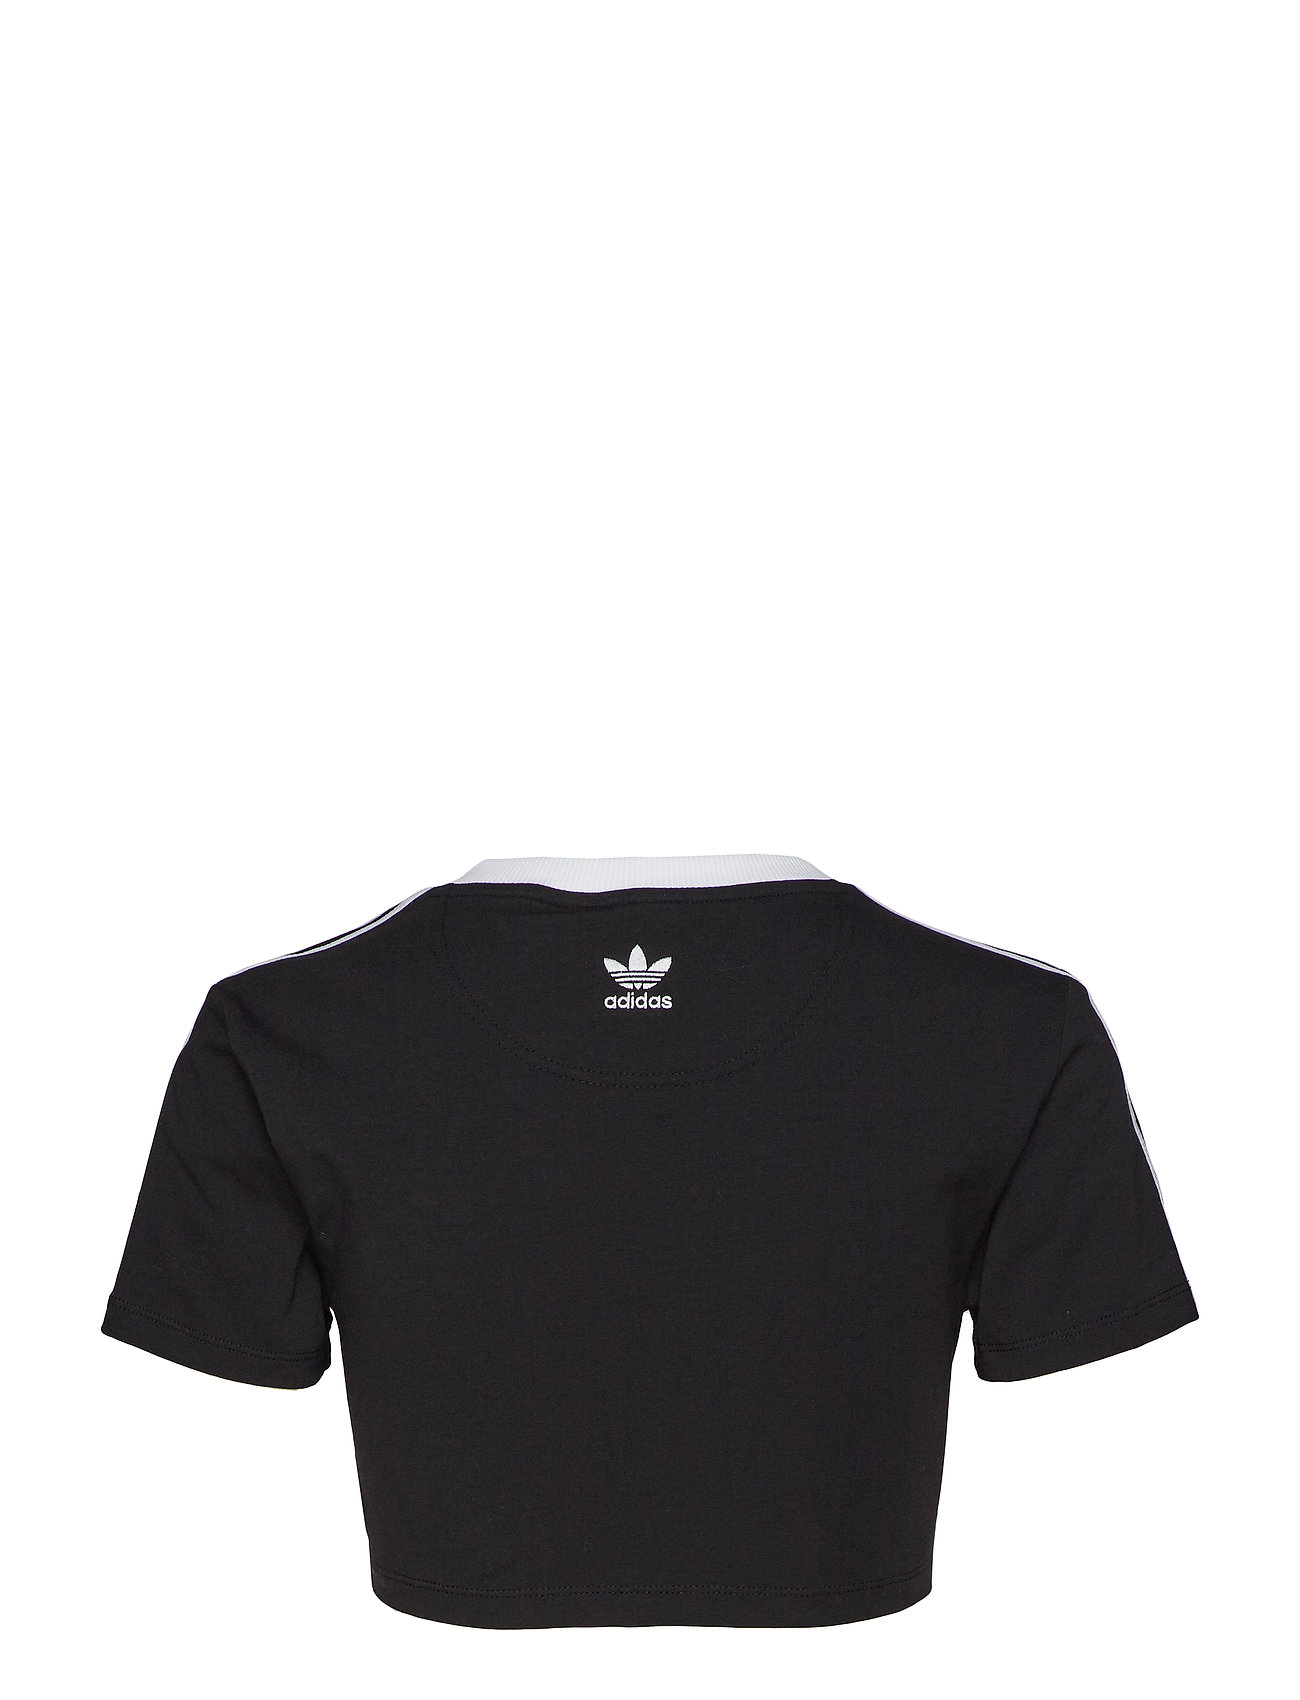 adidas Originals C 3 STRIPES TEE - T-shirty i zopy BLACK - Kobiety Odzież.